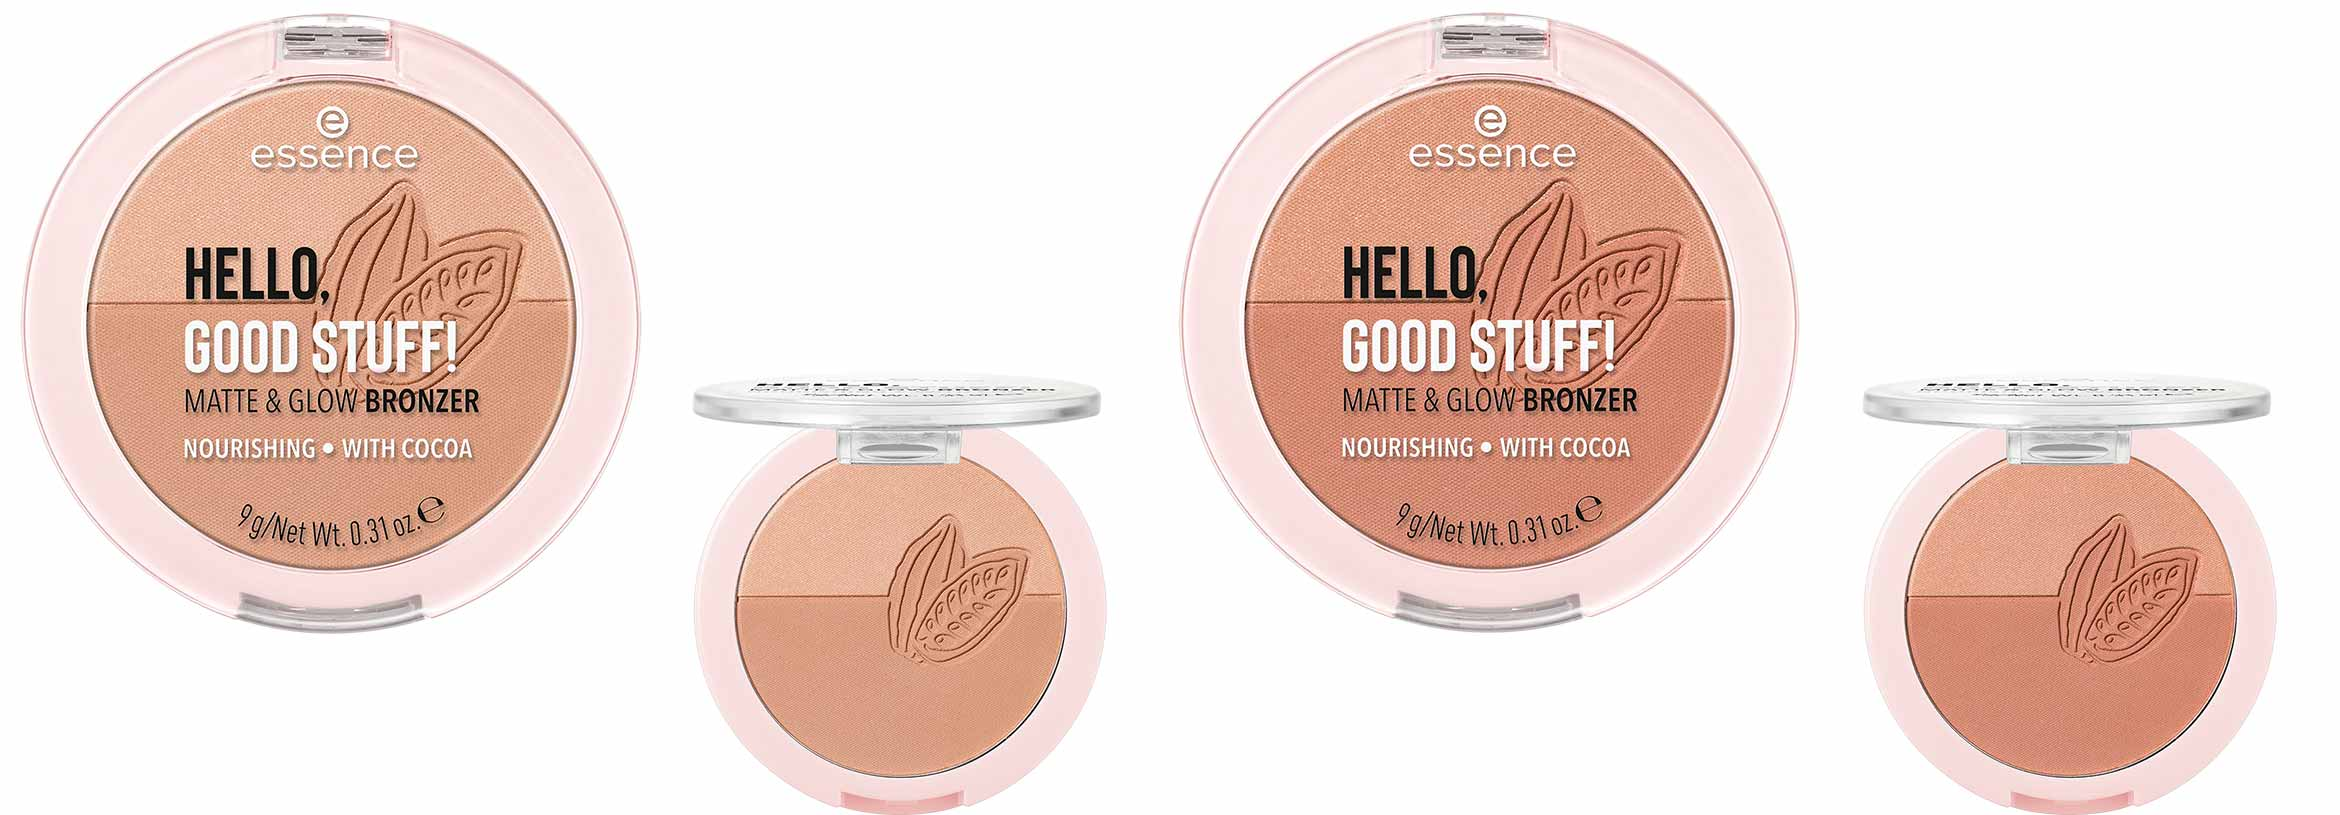 essence hello, good stuff matt glow bronzer